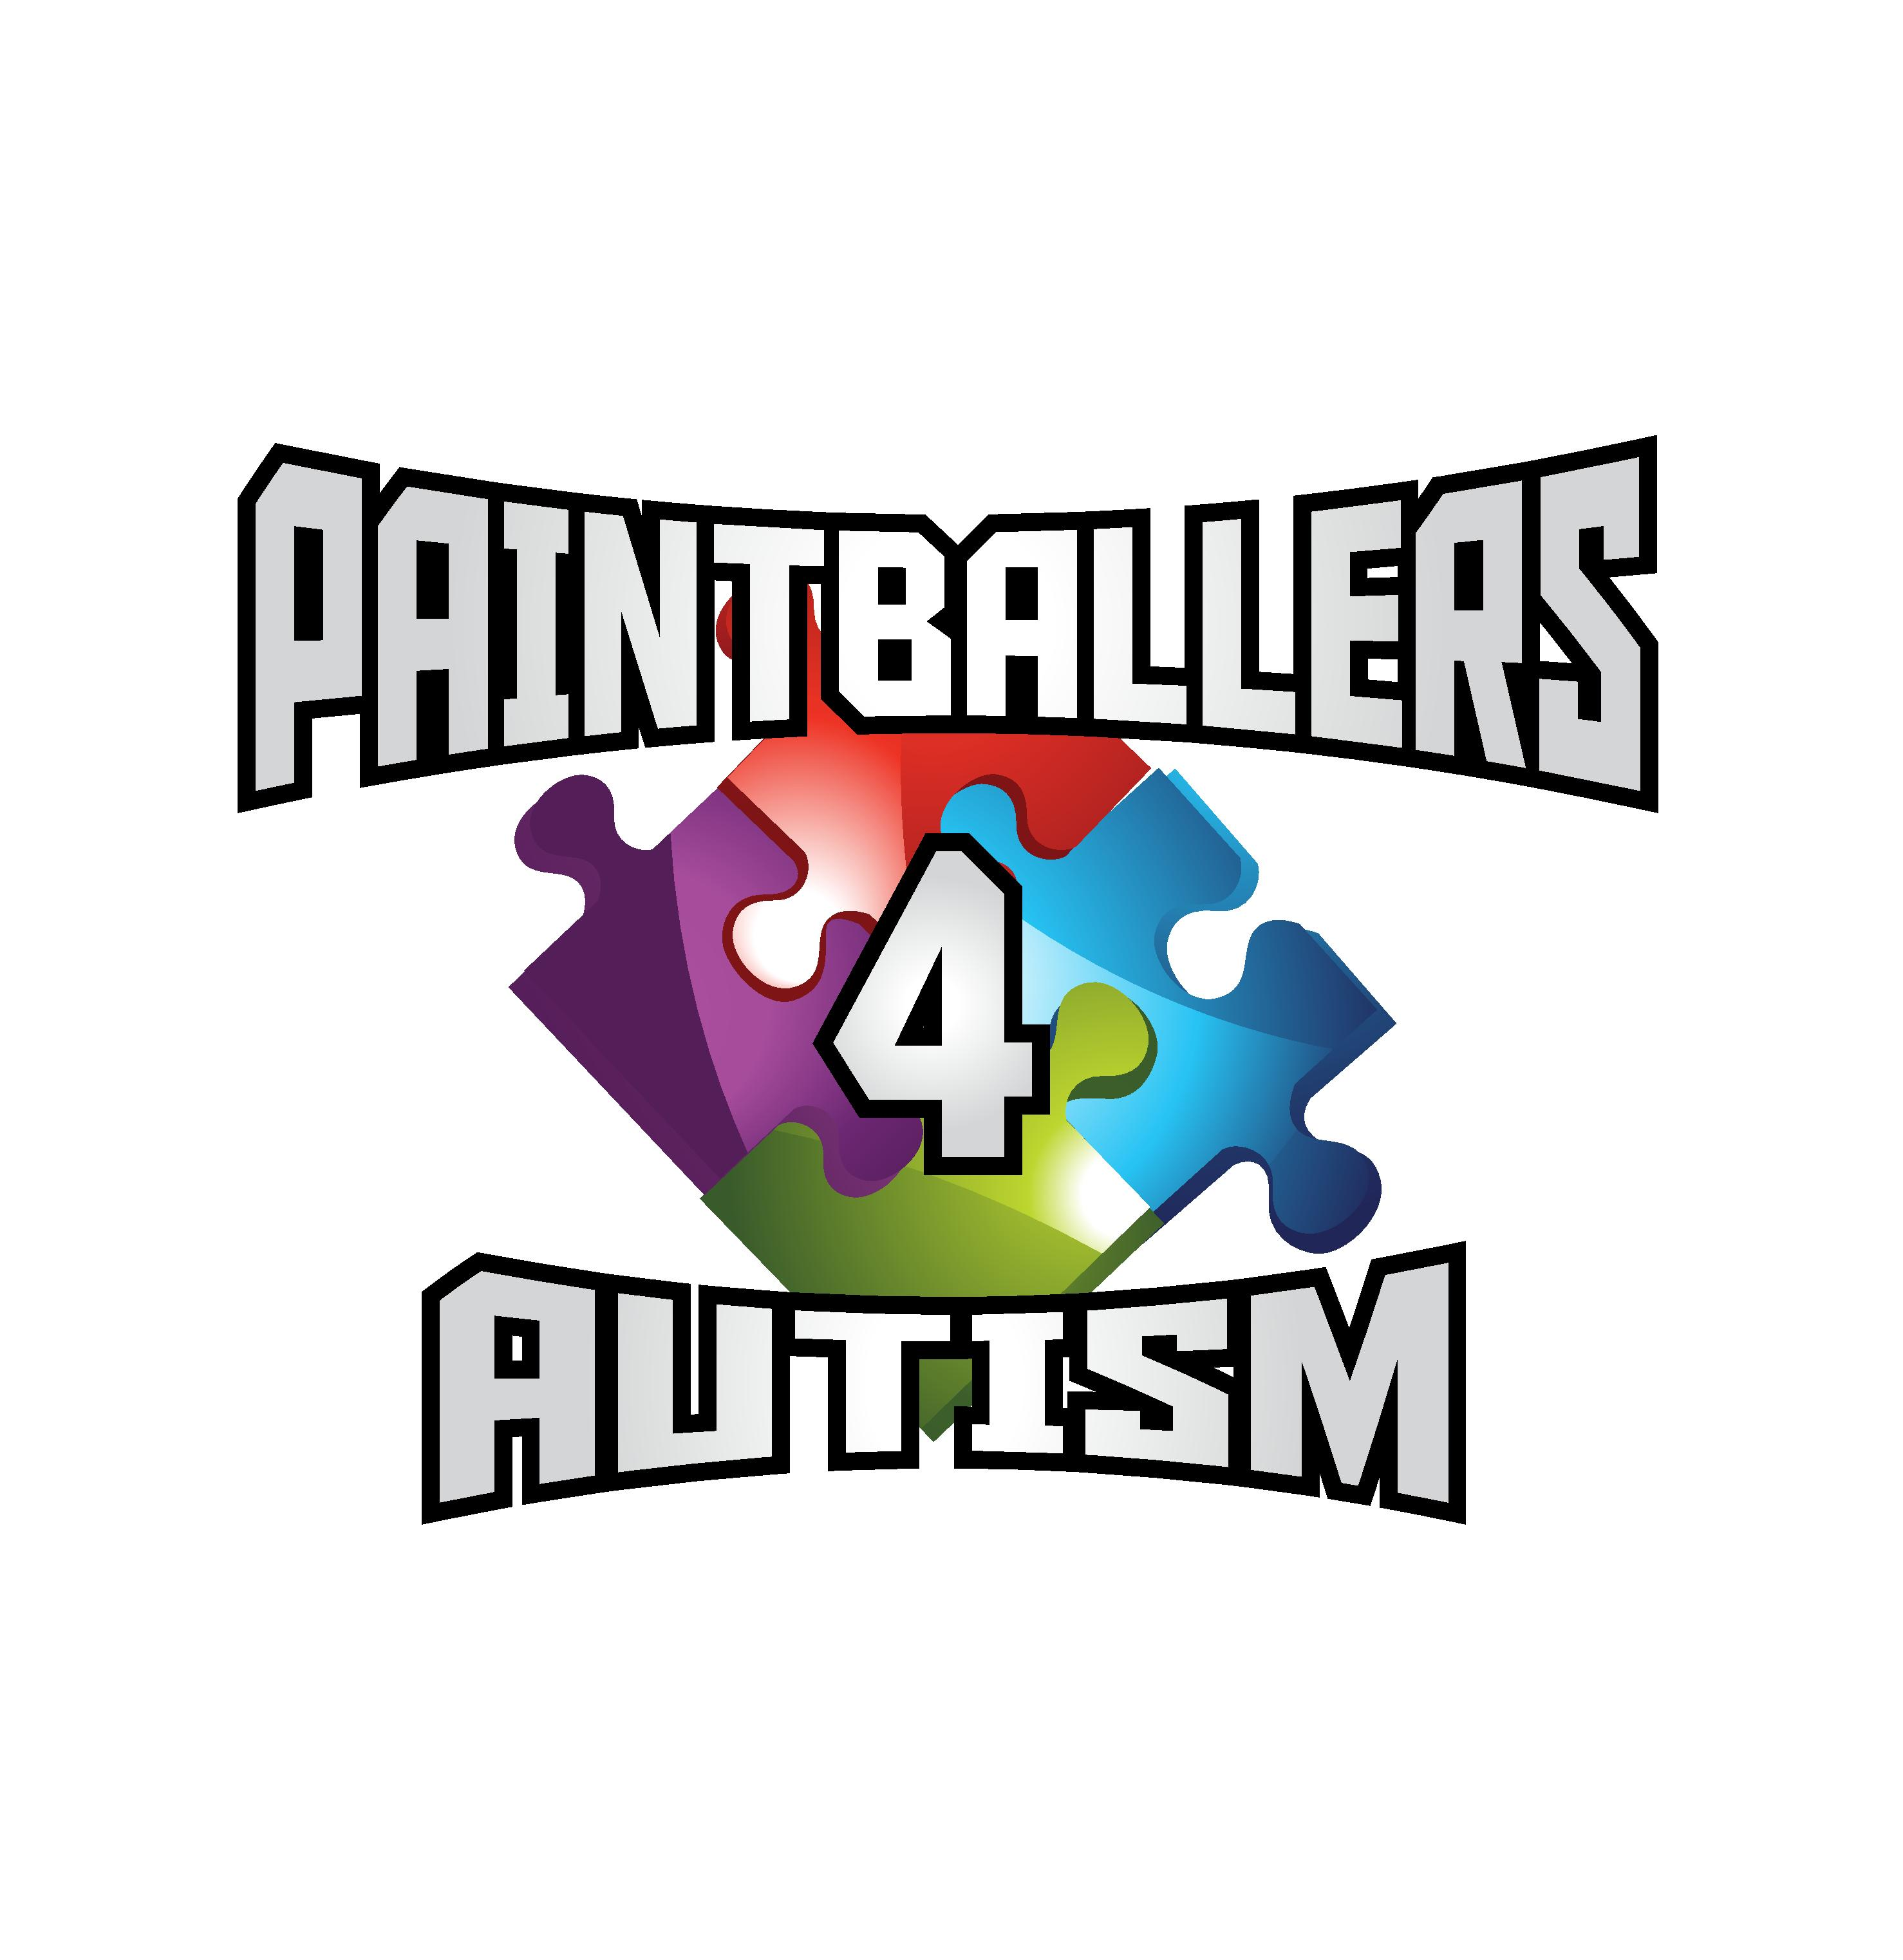 New Paintballers 4 Autism Team Formed